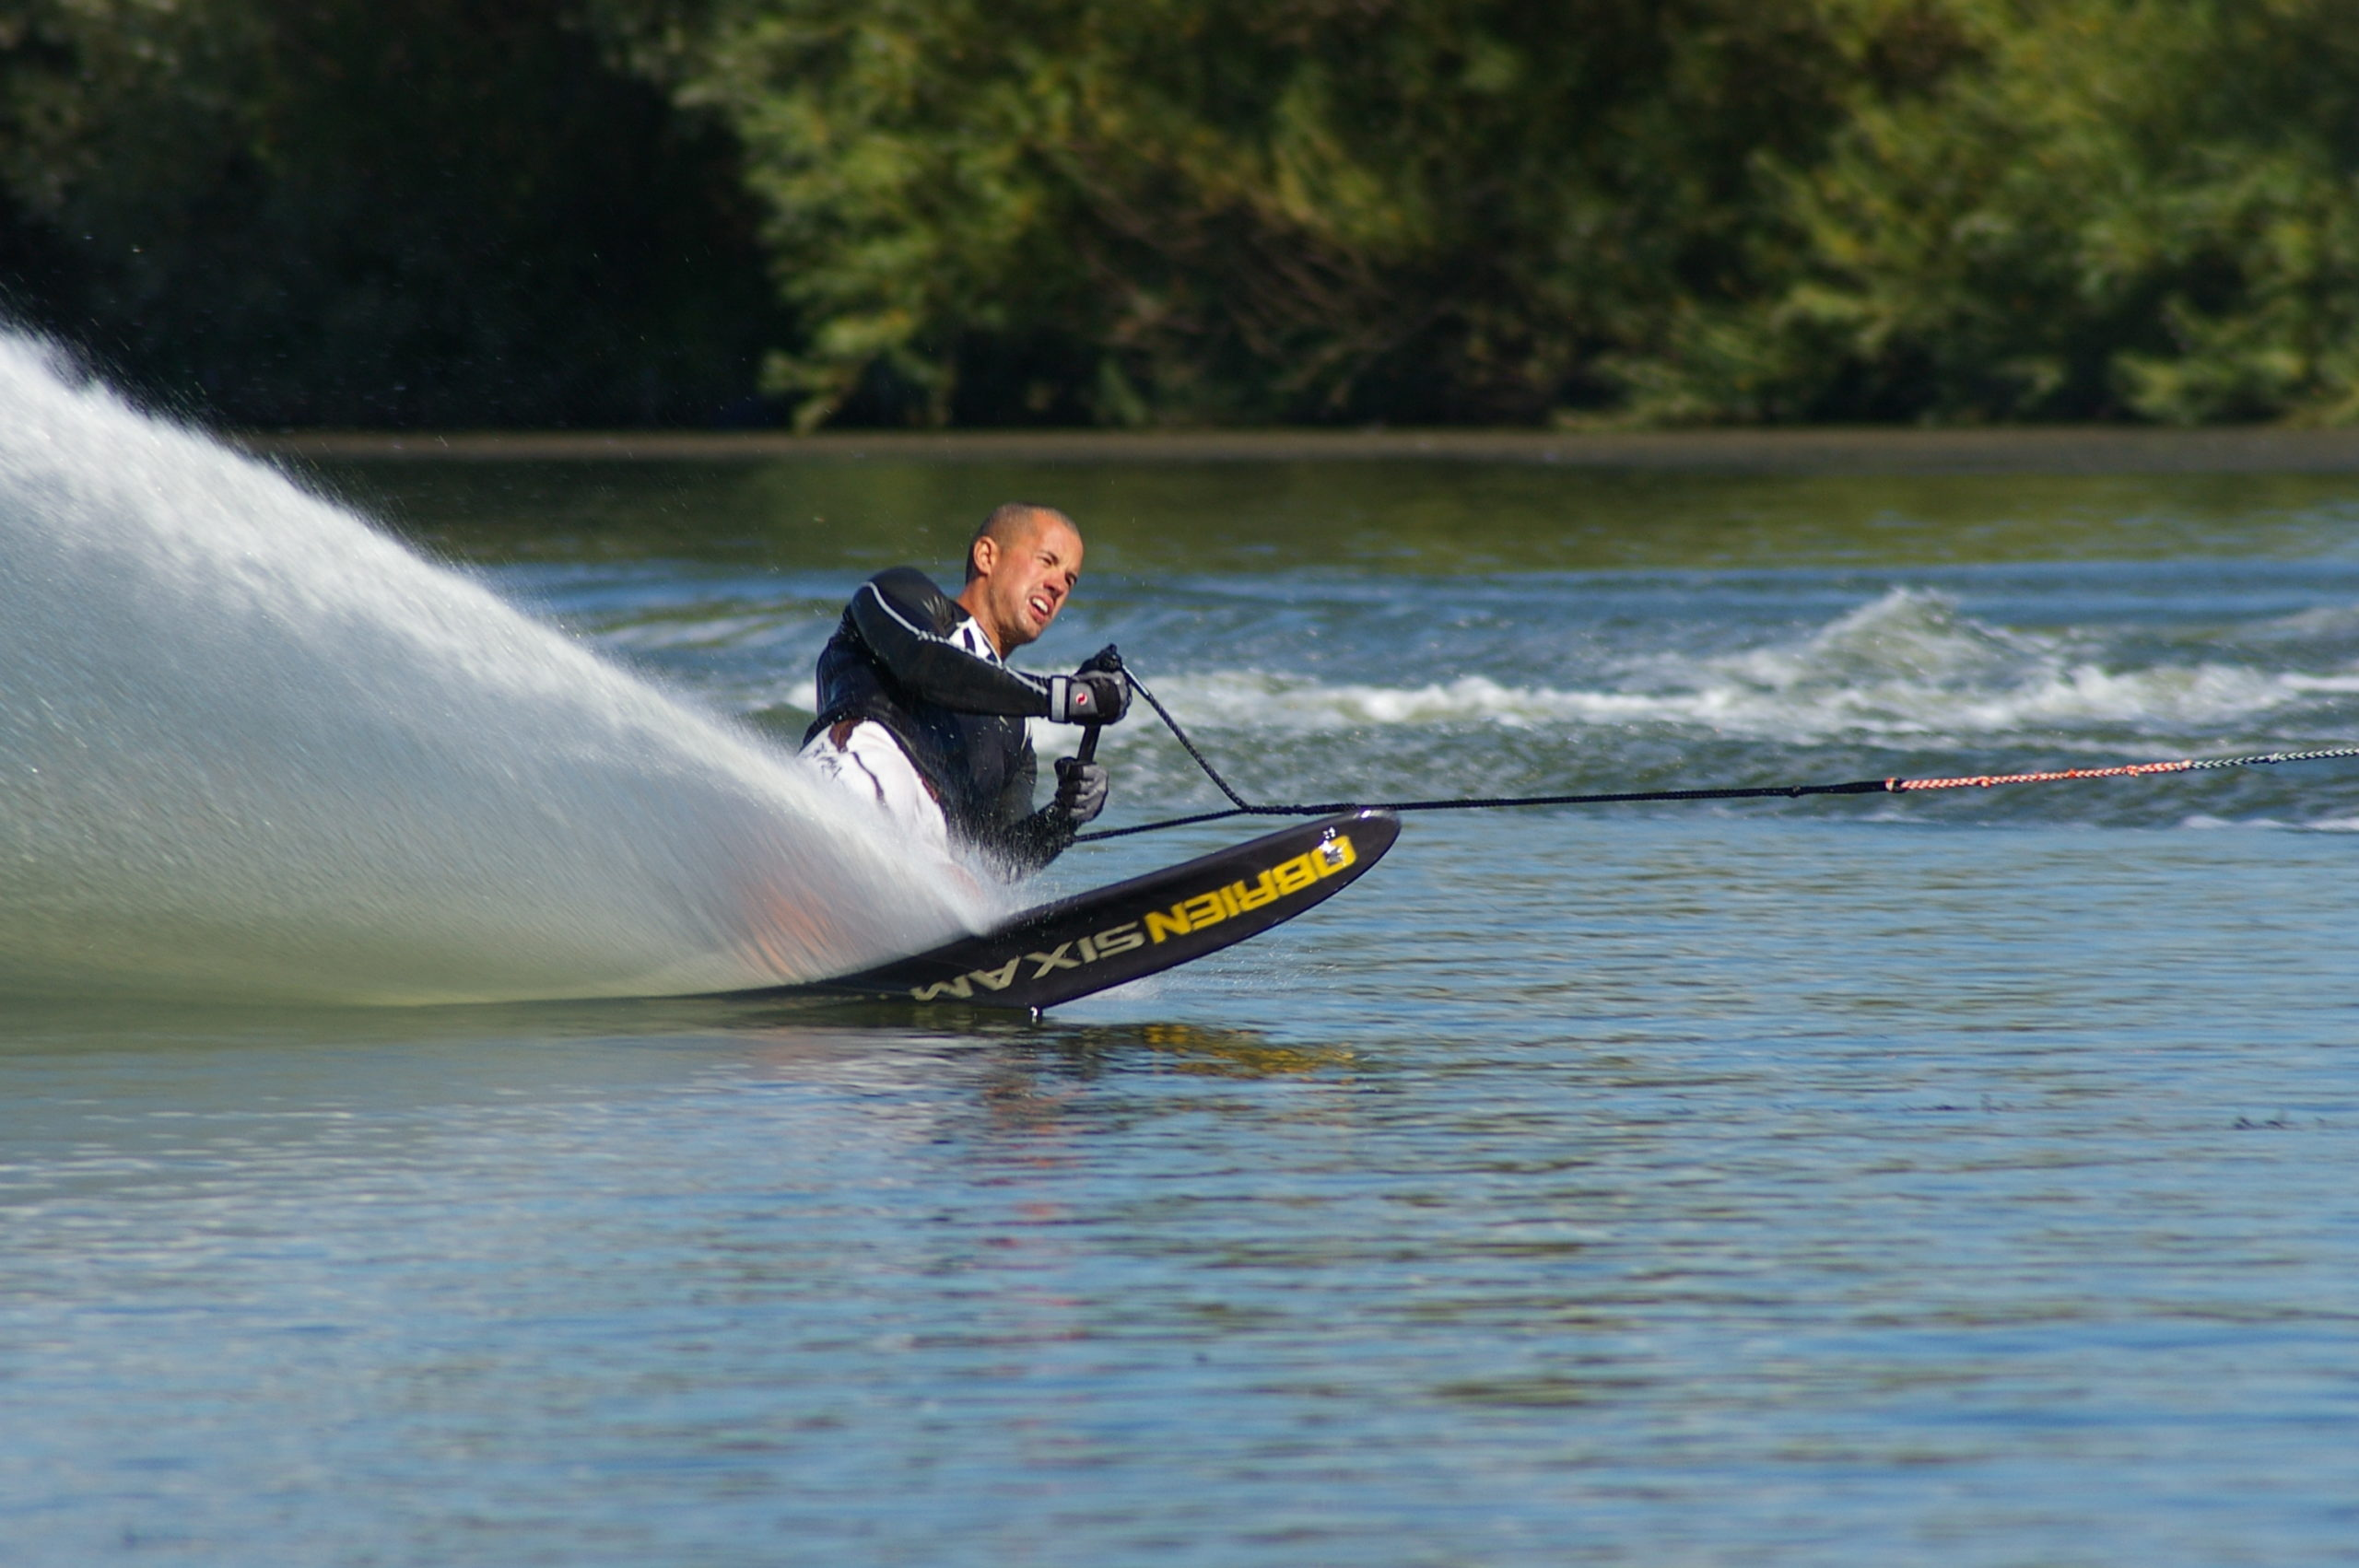 activities gallery with slalom water skier on the lake